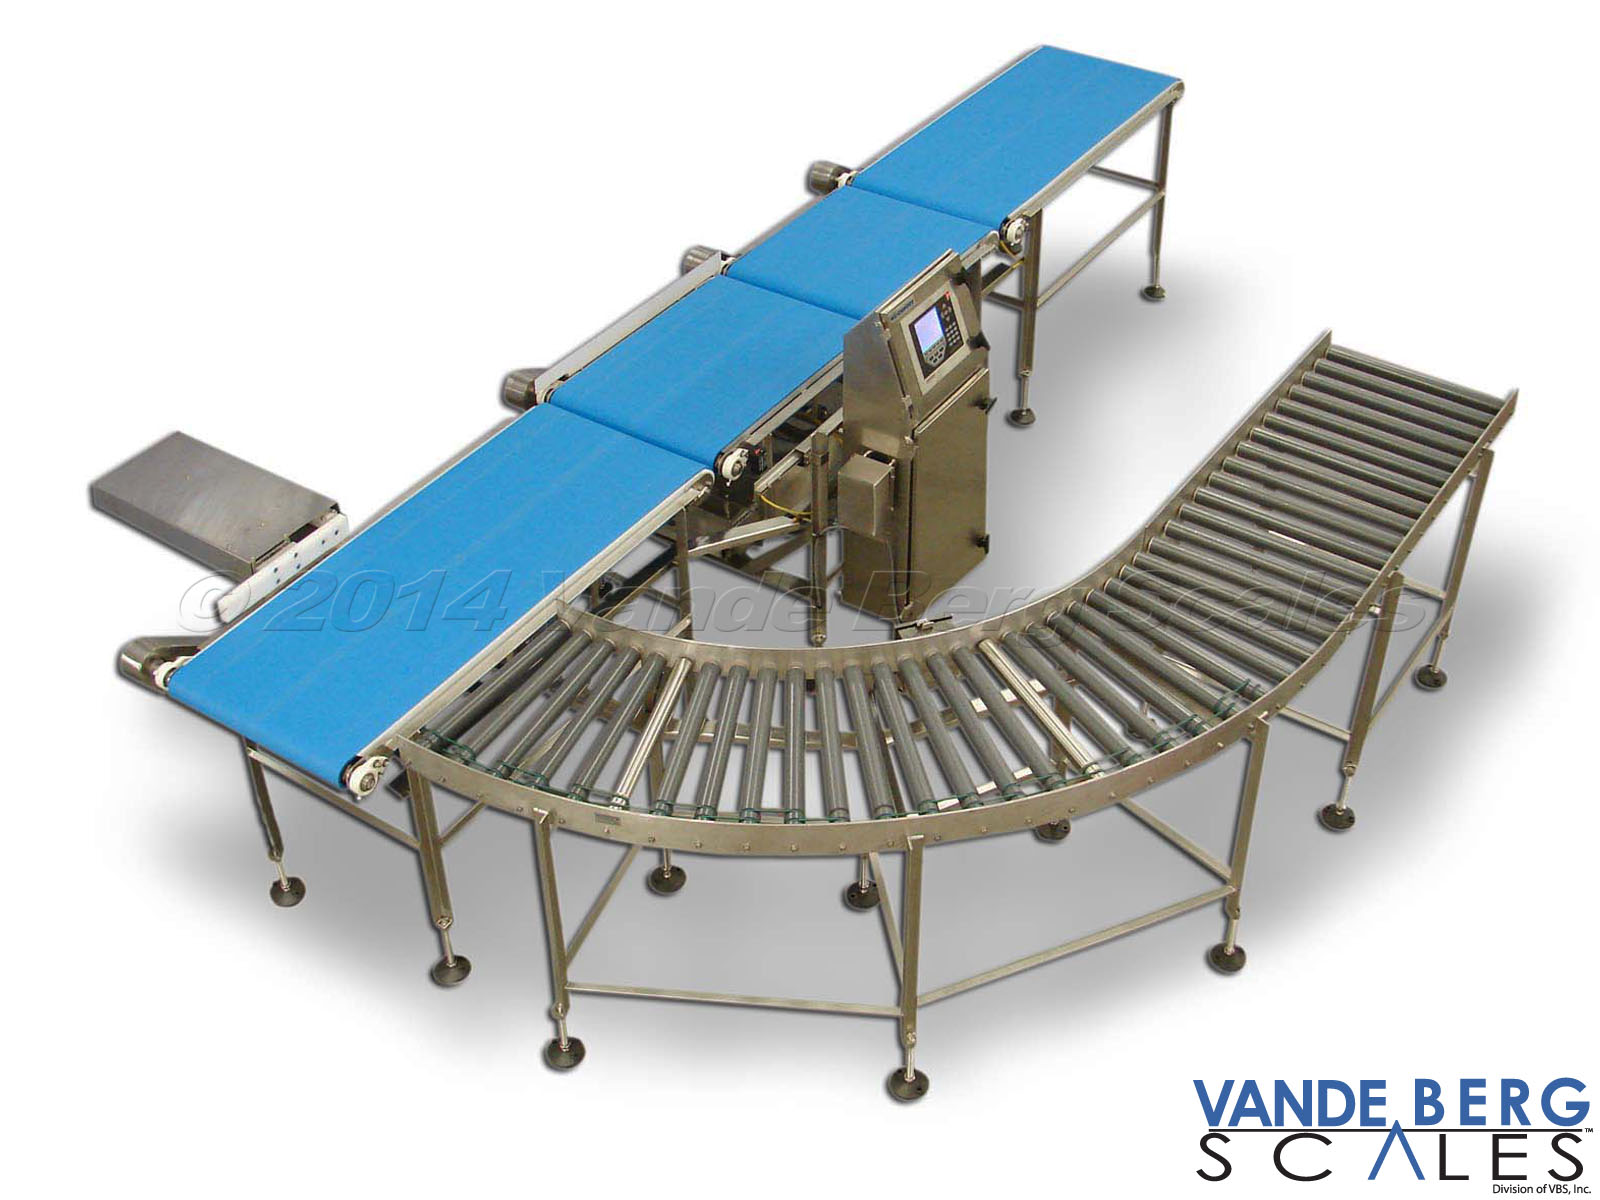 Conveyor Scale with Infeed & Outfeed Conveyor - Divert will reject out-of-tolerance product to the roller conveyor for rework.